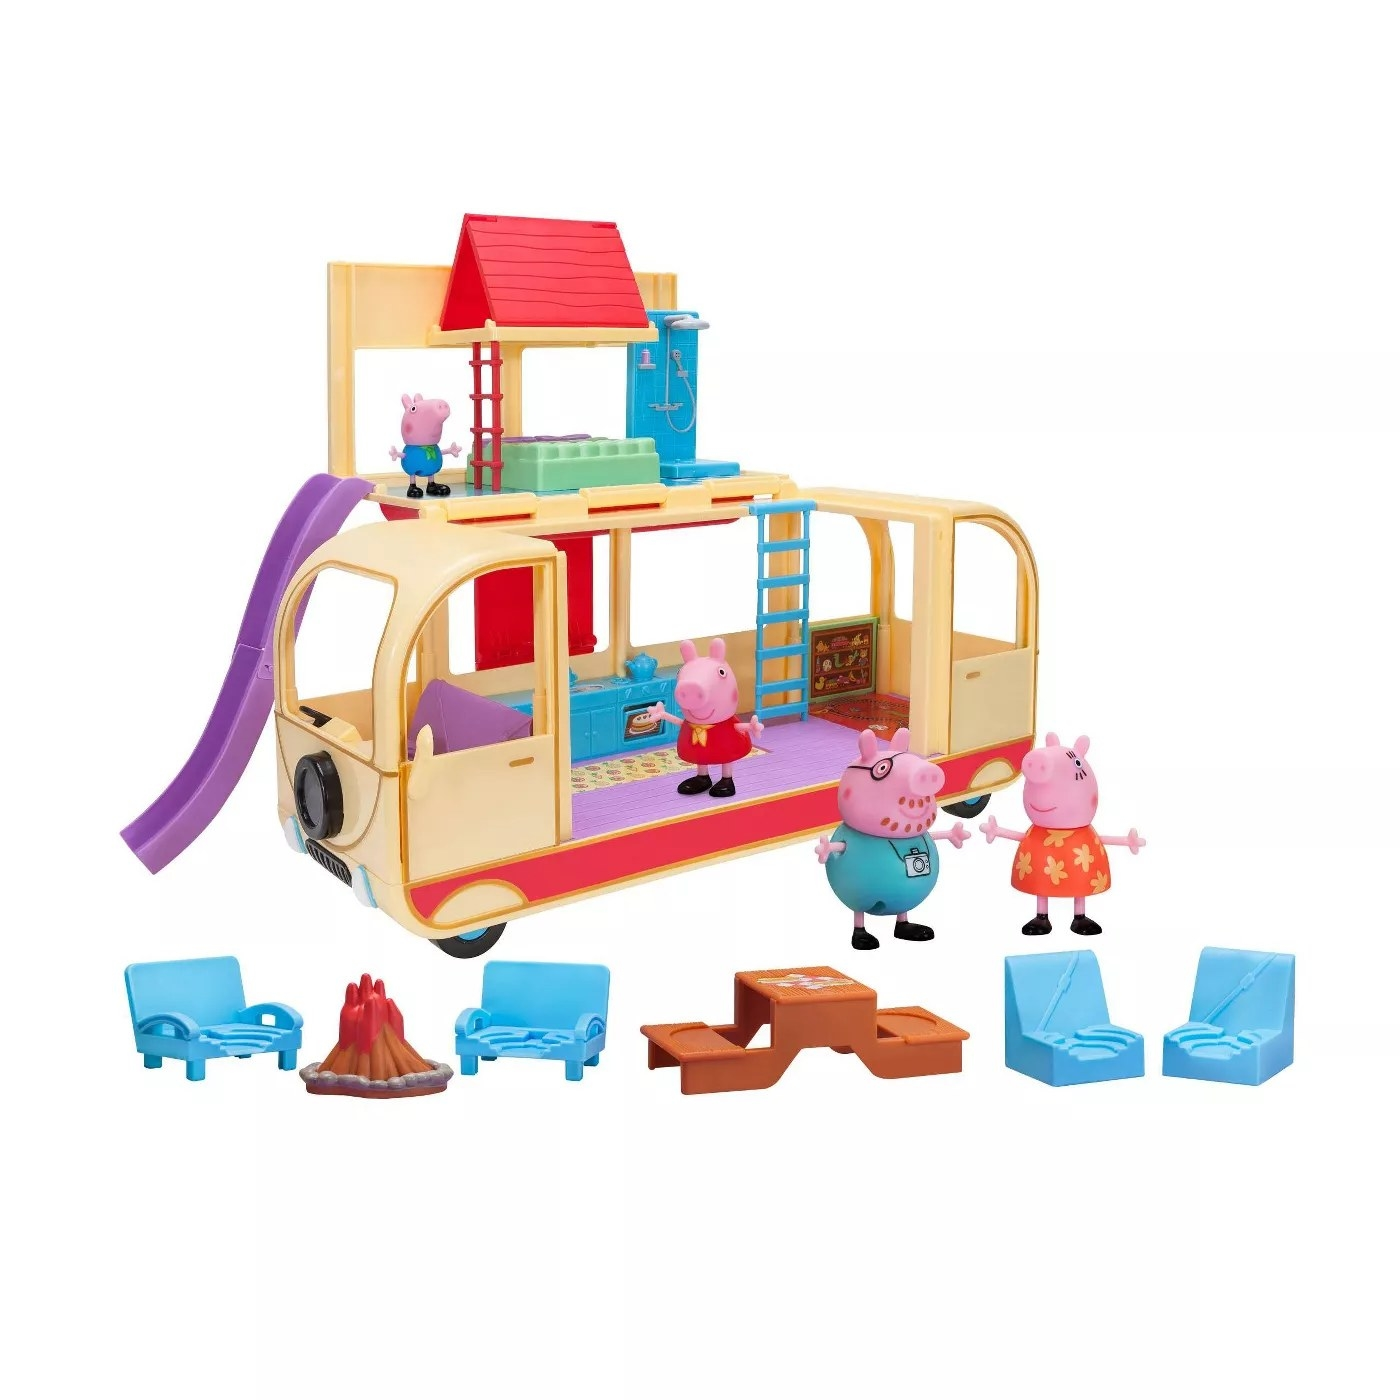 Peppa Pig's family figurines, a campervan, and camping accessories